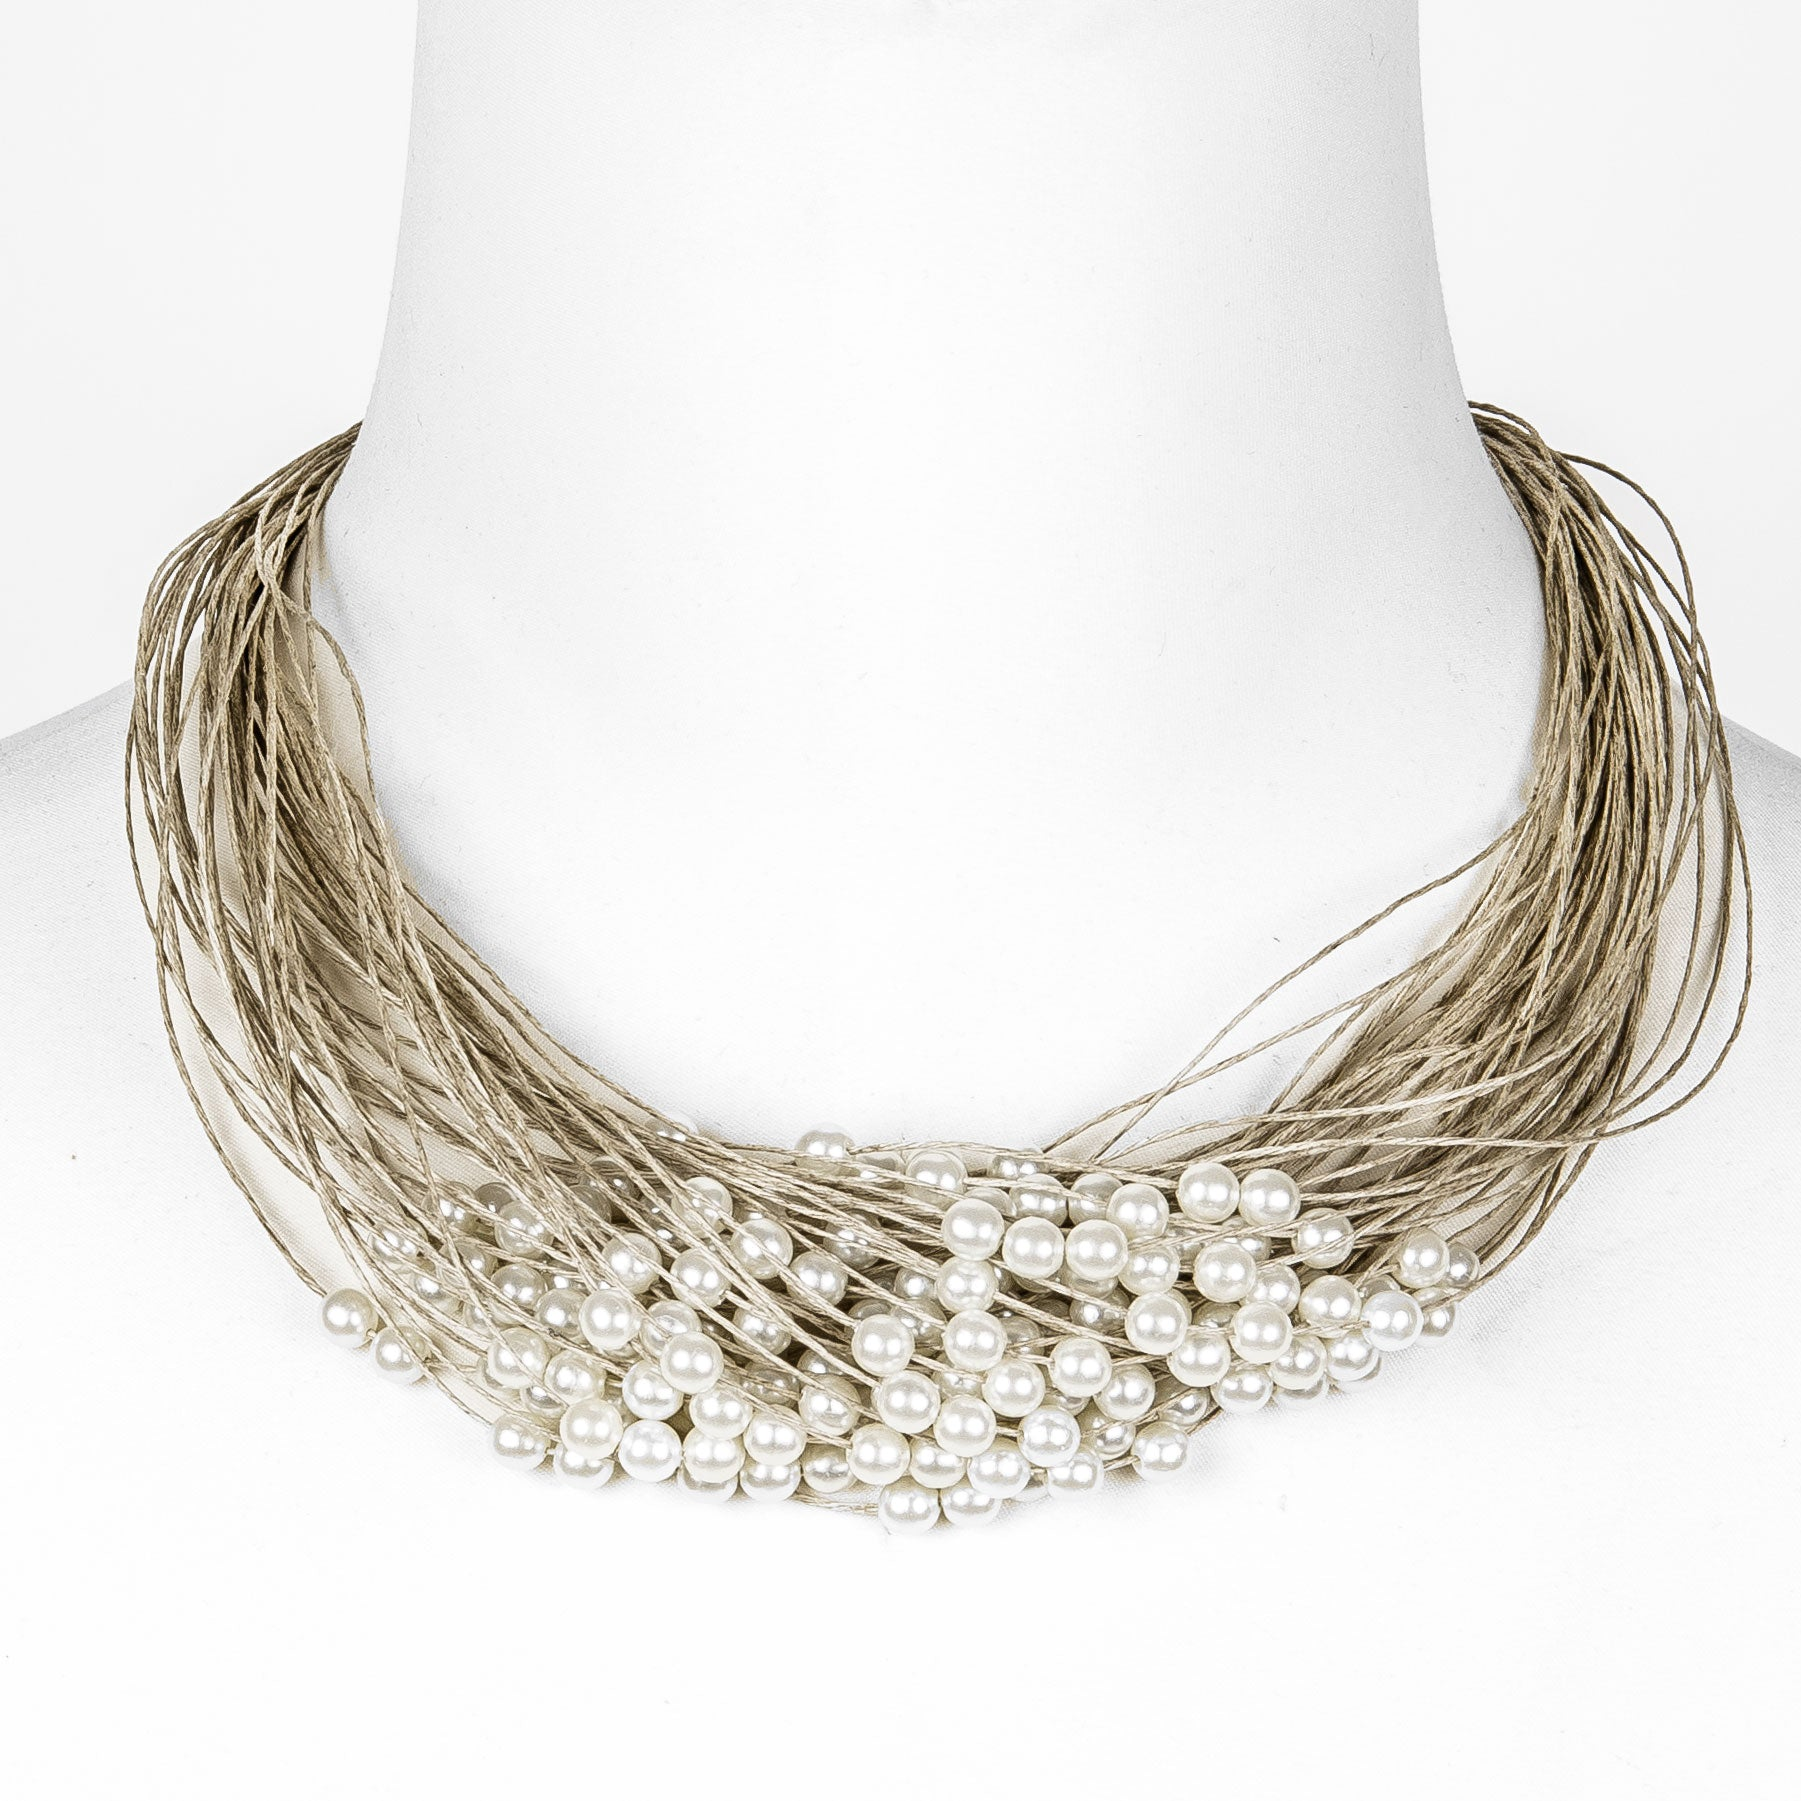 biwa pearl com necklace img gold yolandejimenez product solana goud parel